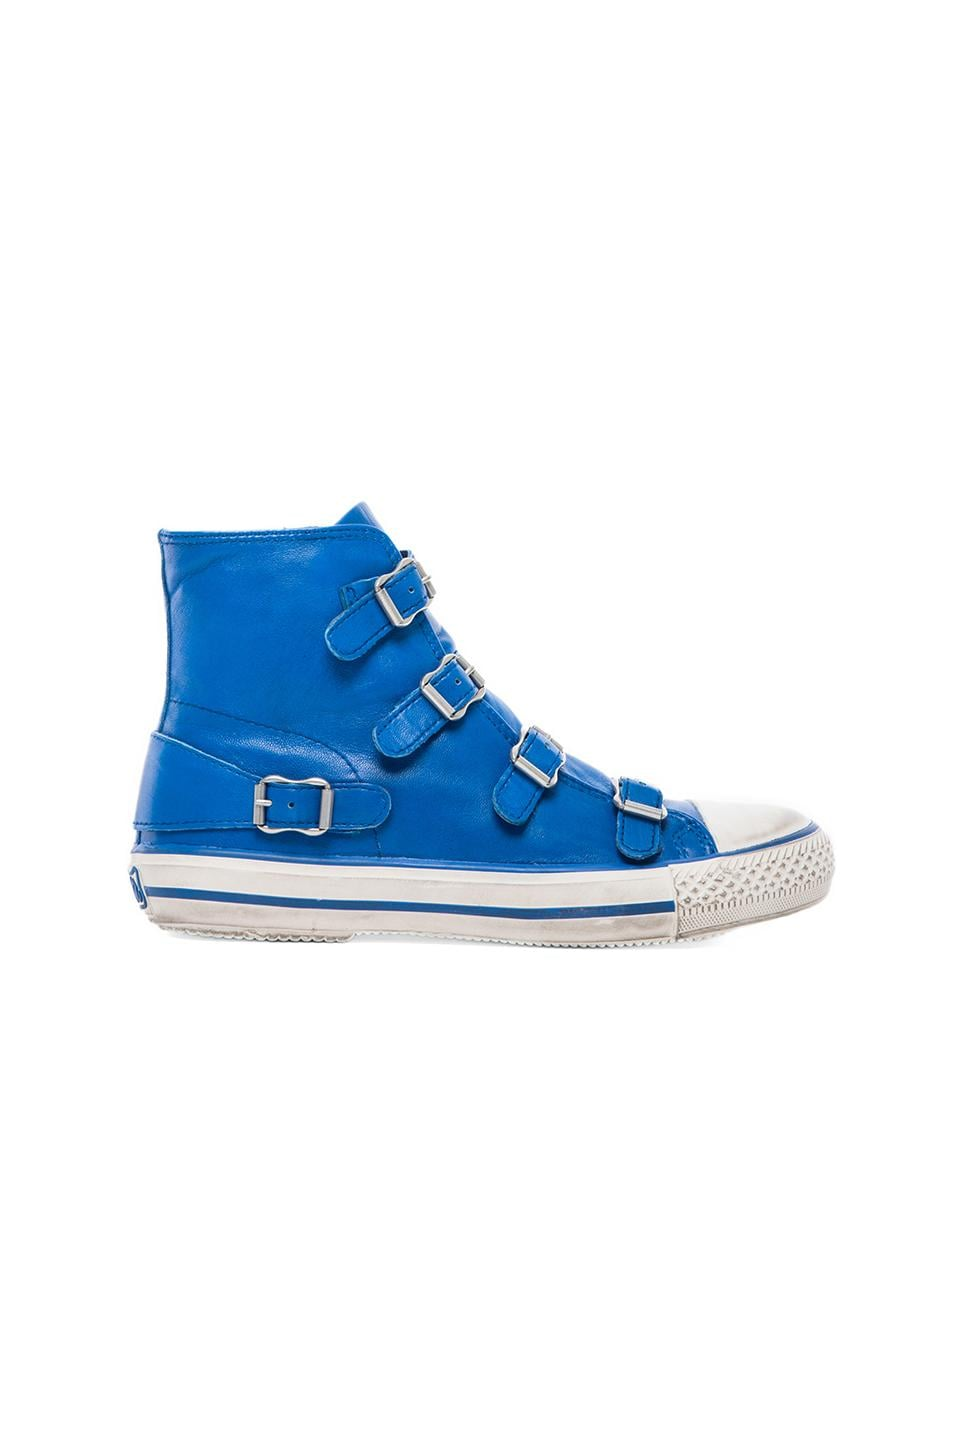 Ash Virgin Sneaker in Royal